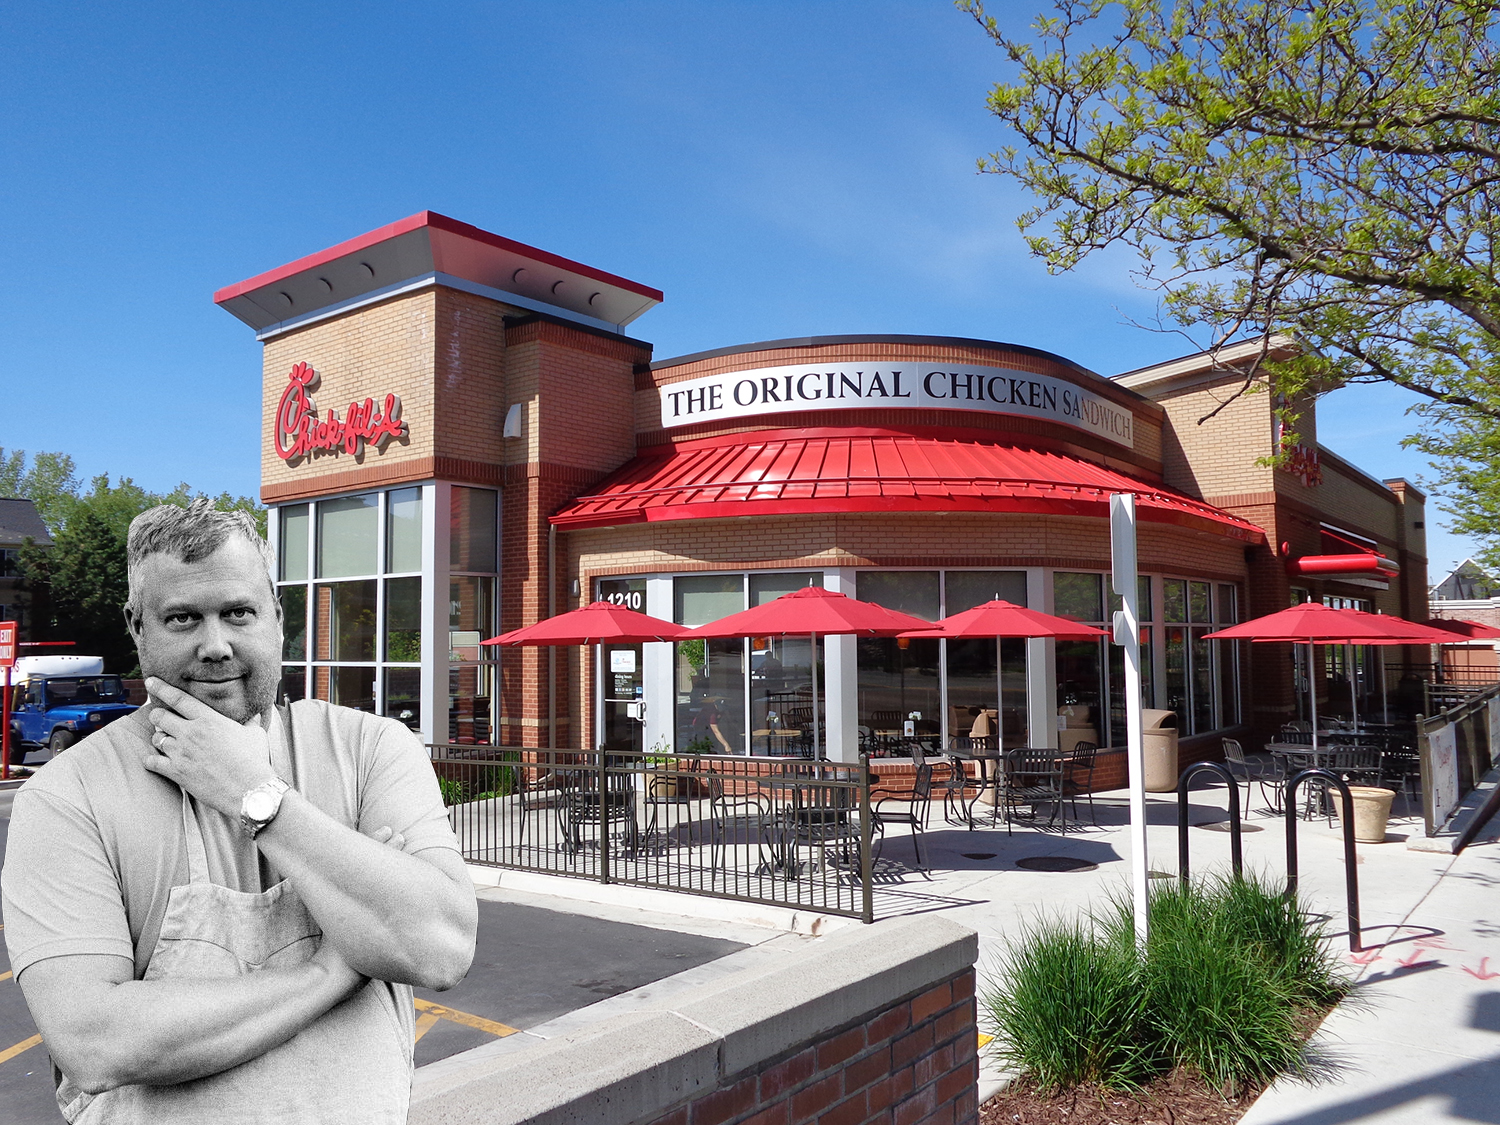 [Chick-fil-A photo: Wikimedia Commons; Ford Fry photo: Emily Schultz]